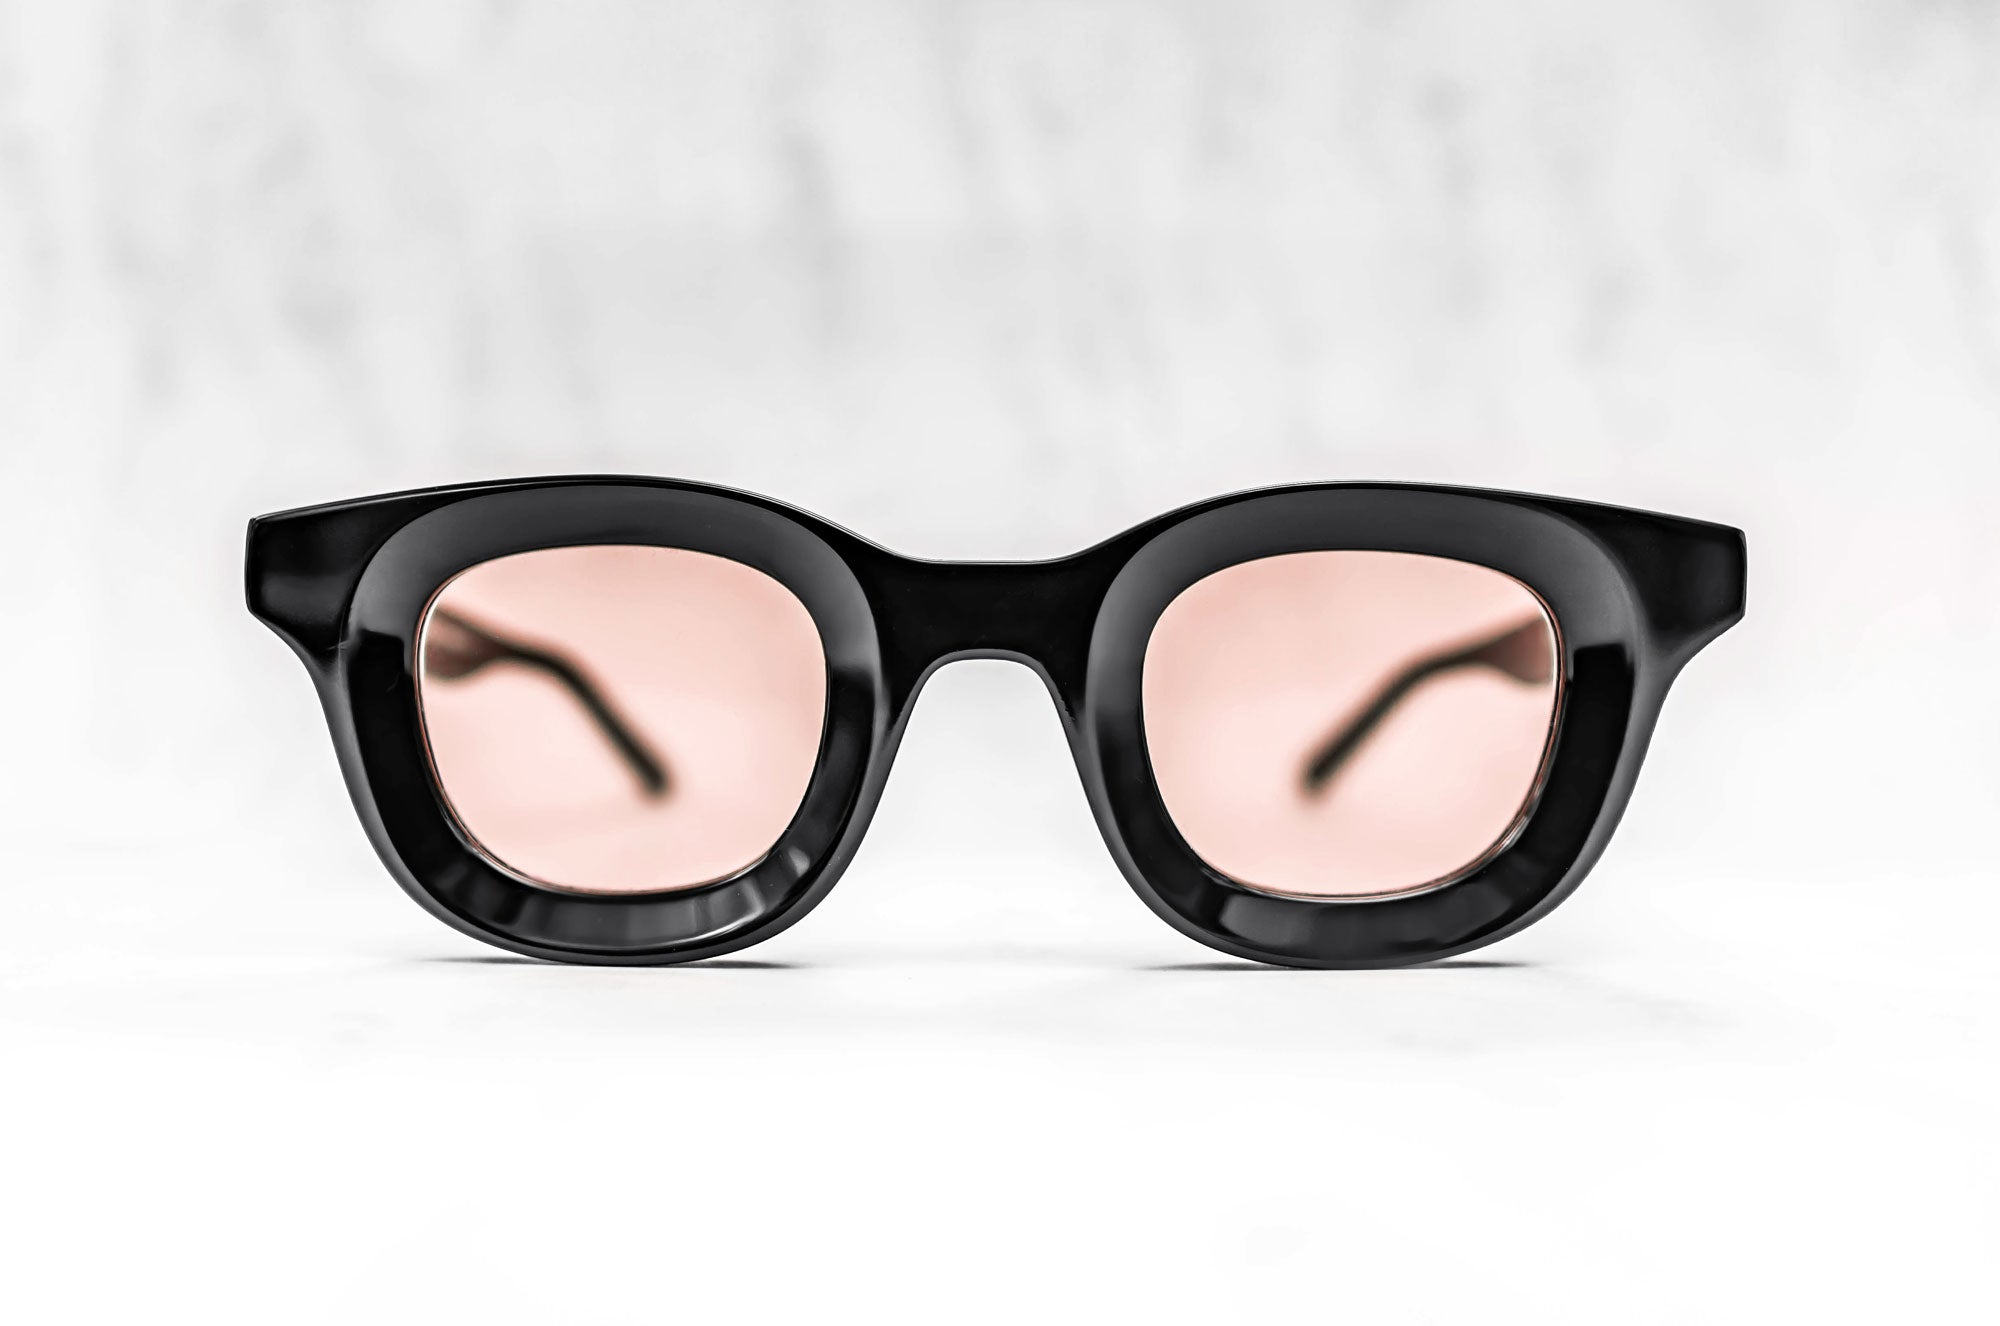 RHUDE x Thierry Lasry - Rhodeo Sunglasses in Black w/ Pink Lenses (101)